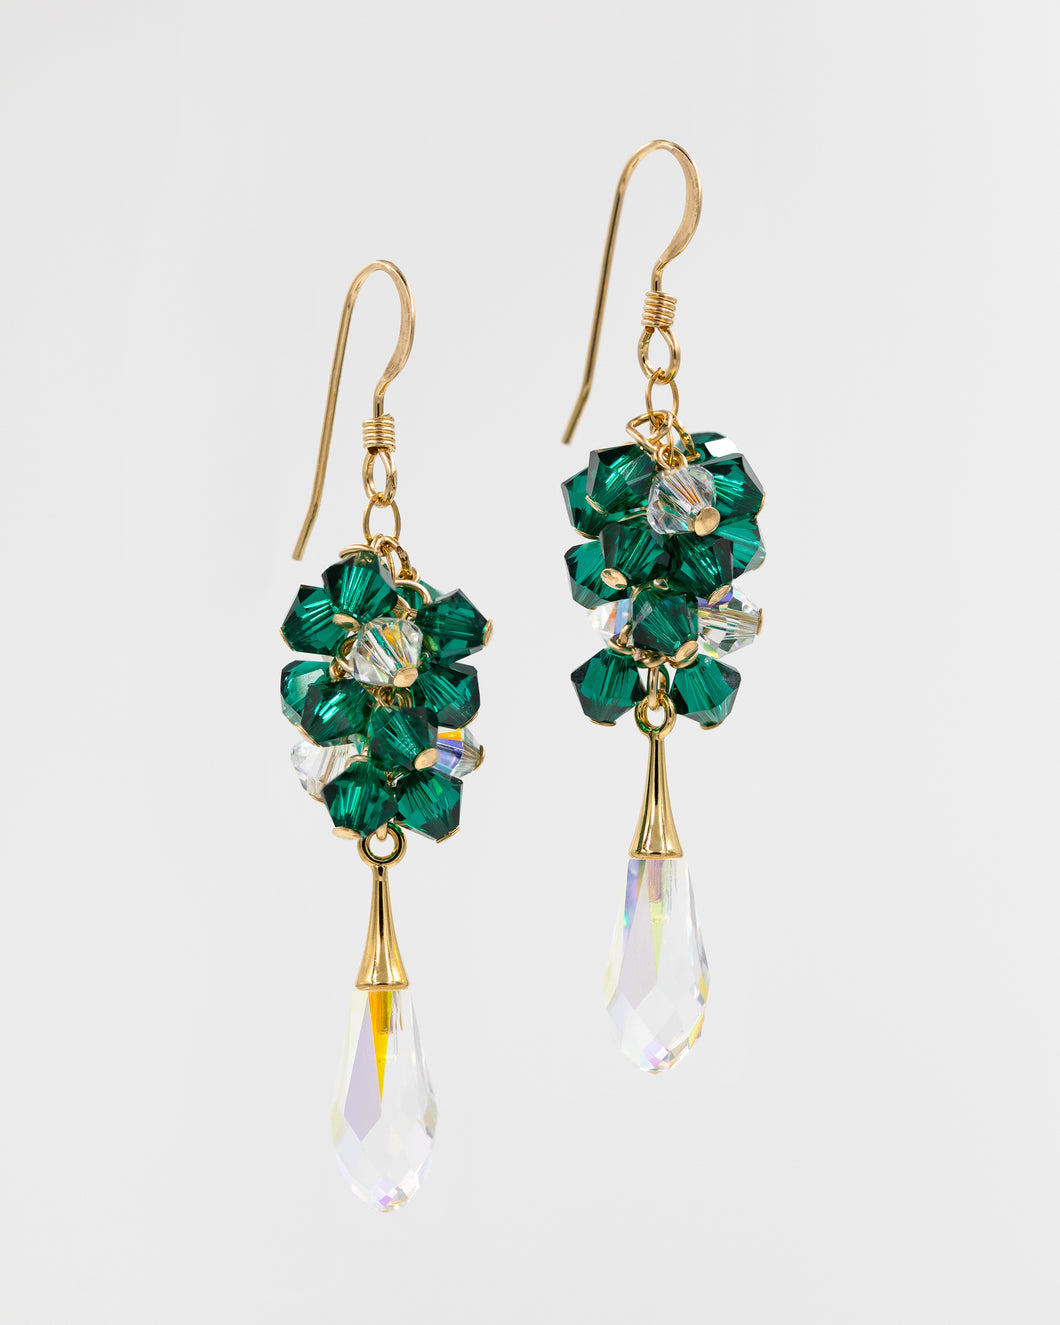 Picture of gold earrings with emerald Swarovski crystals and teardrop